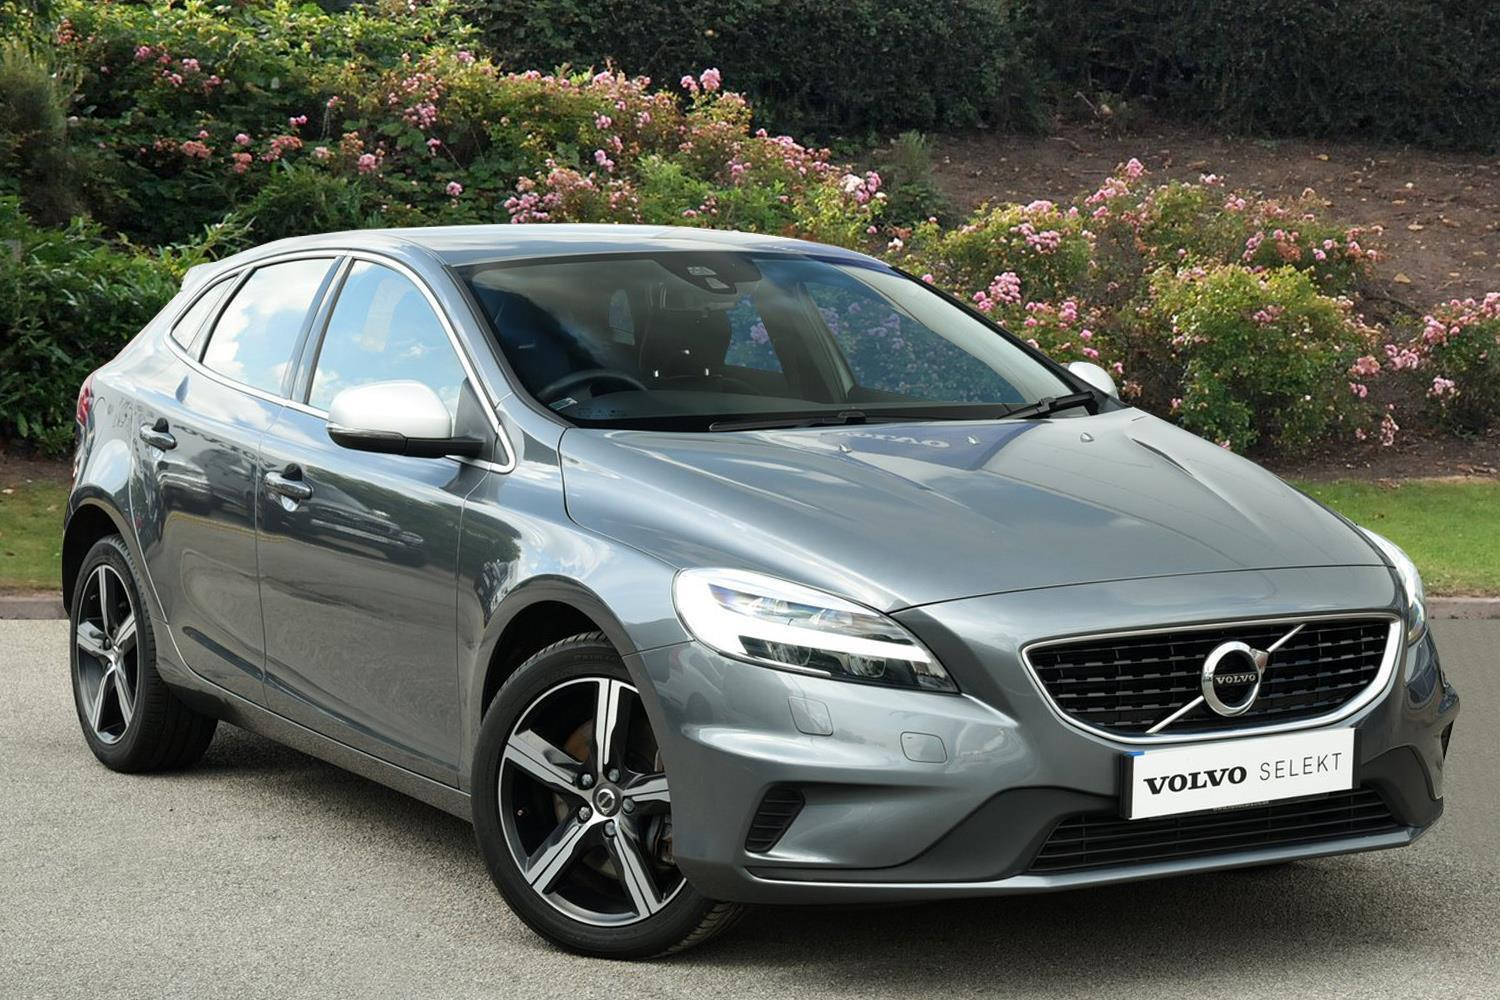 used volvo v40 d3 4 cyl 150 r design nav plus 5dr diesel. Black Bedroom Furniture Sets. Home Design Ideas